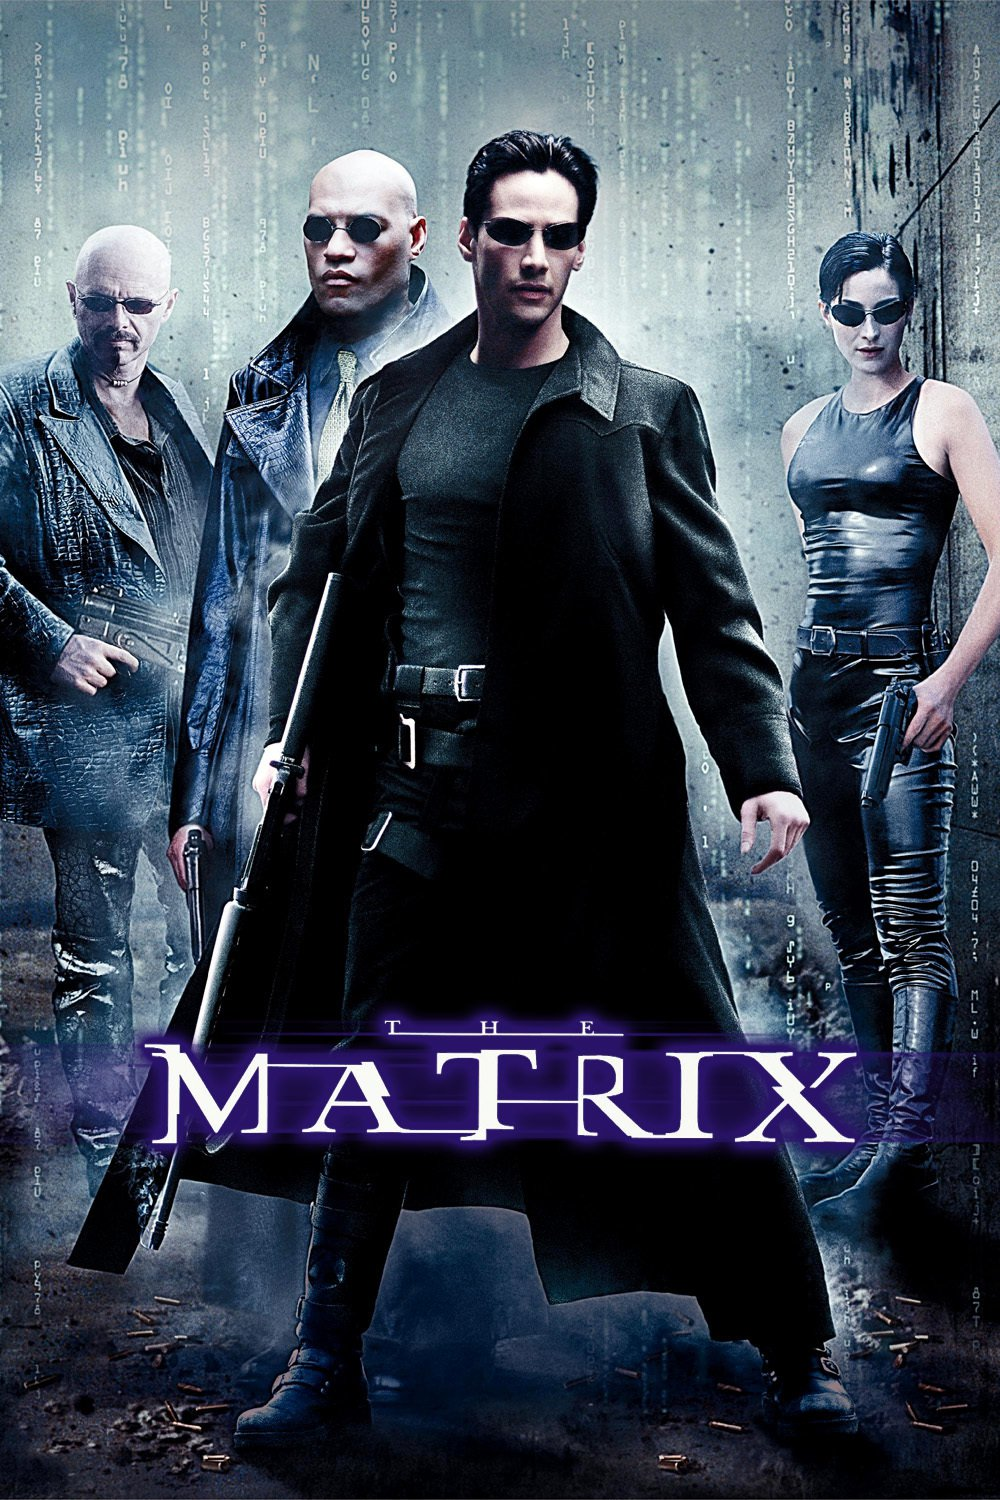 Poster for The Matrix (Science & Screen)